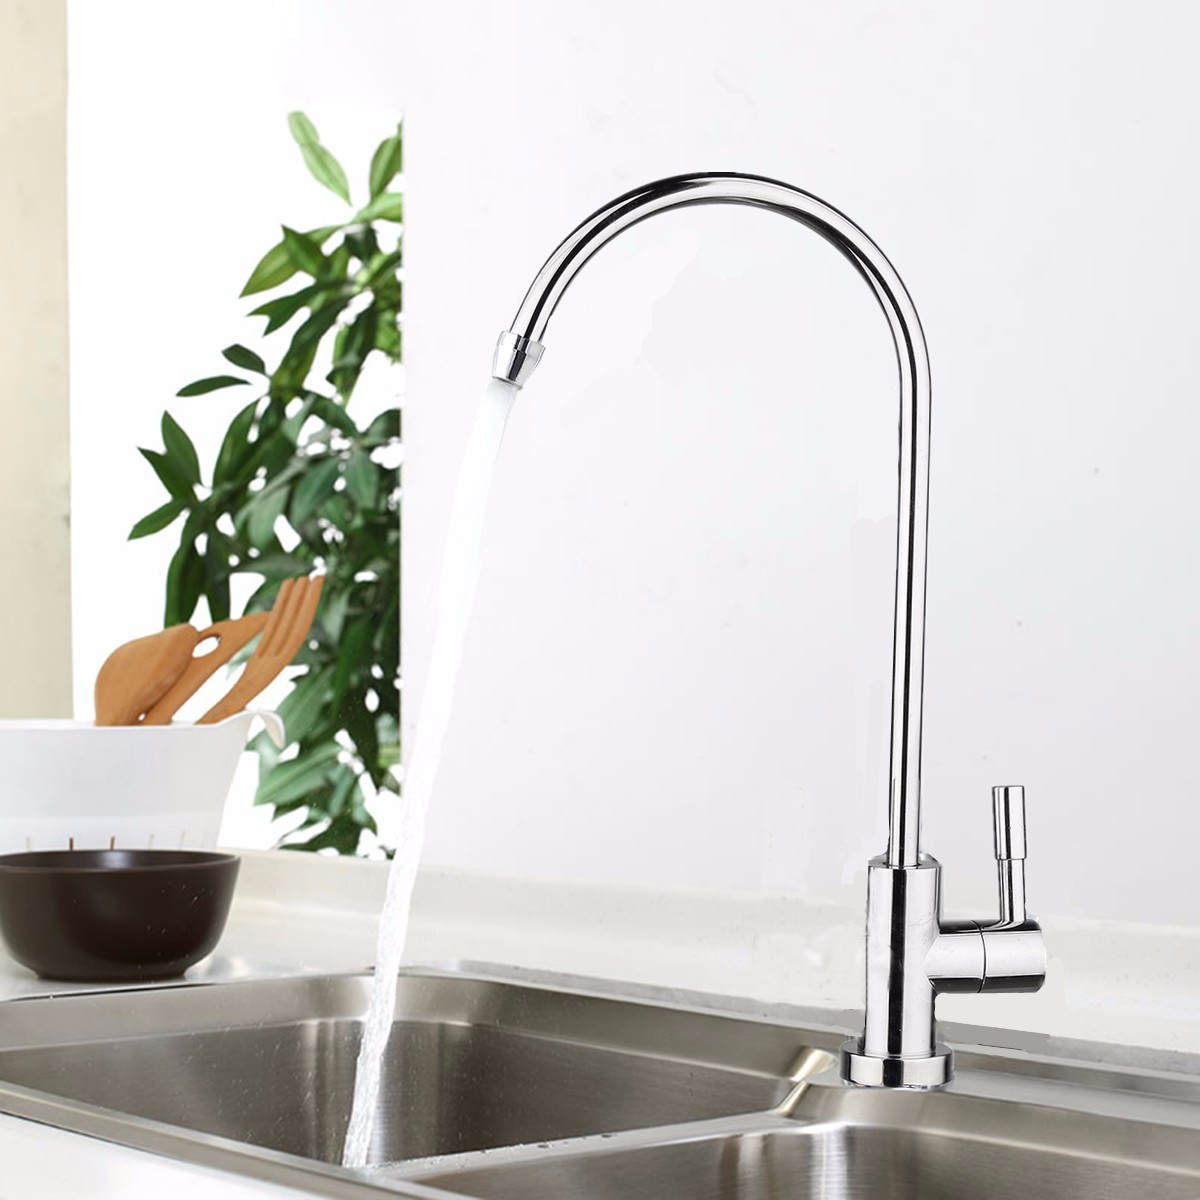 Us 9 48 43 Off Kitchen Water Filter Faucet Chrome Plated 1 4 Inch Connect Hose Reverse Osmosis Filters Parts Purifier Direct Drinking Tap In Water